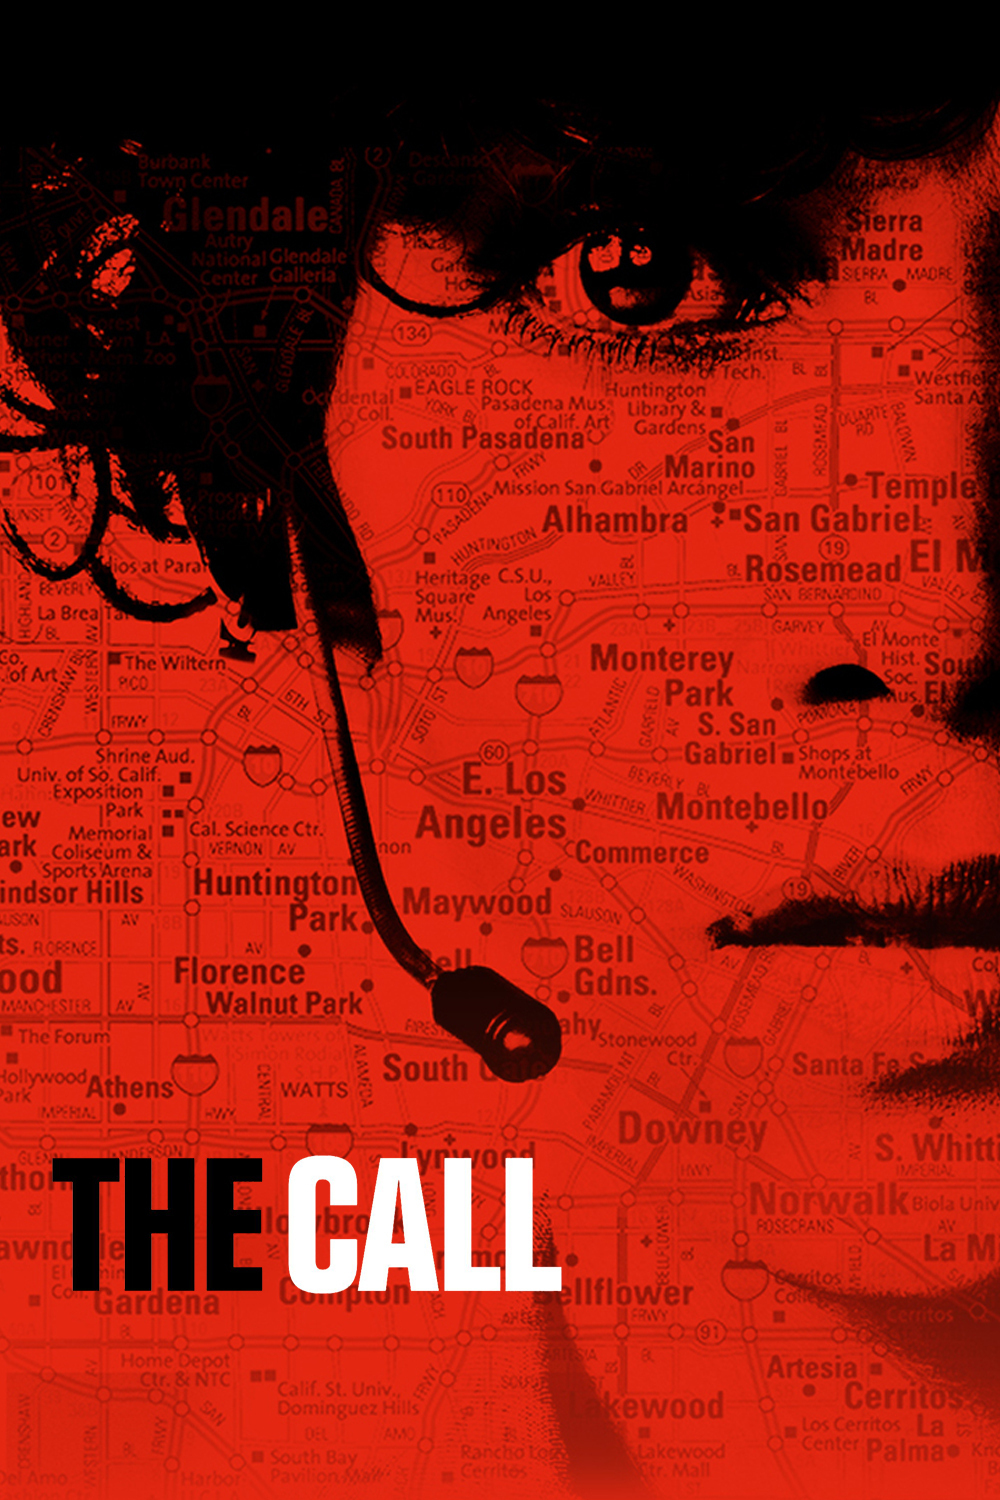 http://zuts.files.wordpress.com/2013/11/the-call-poster.jpg